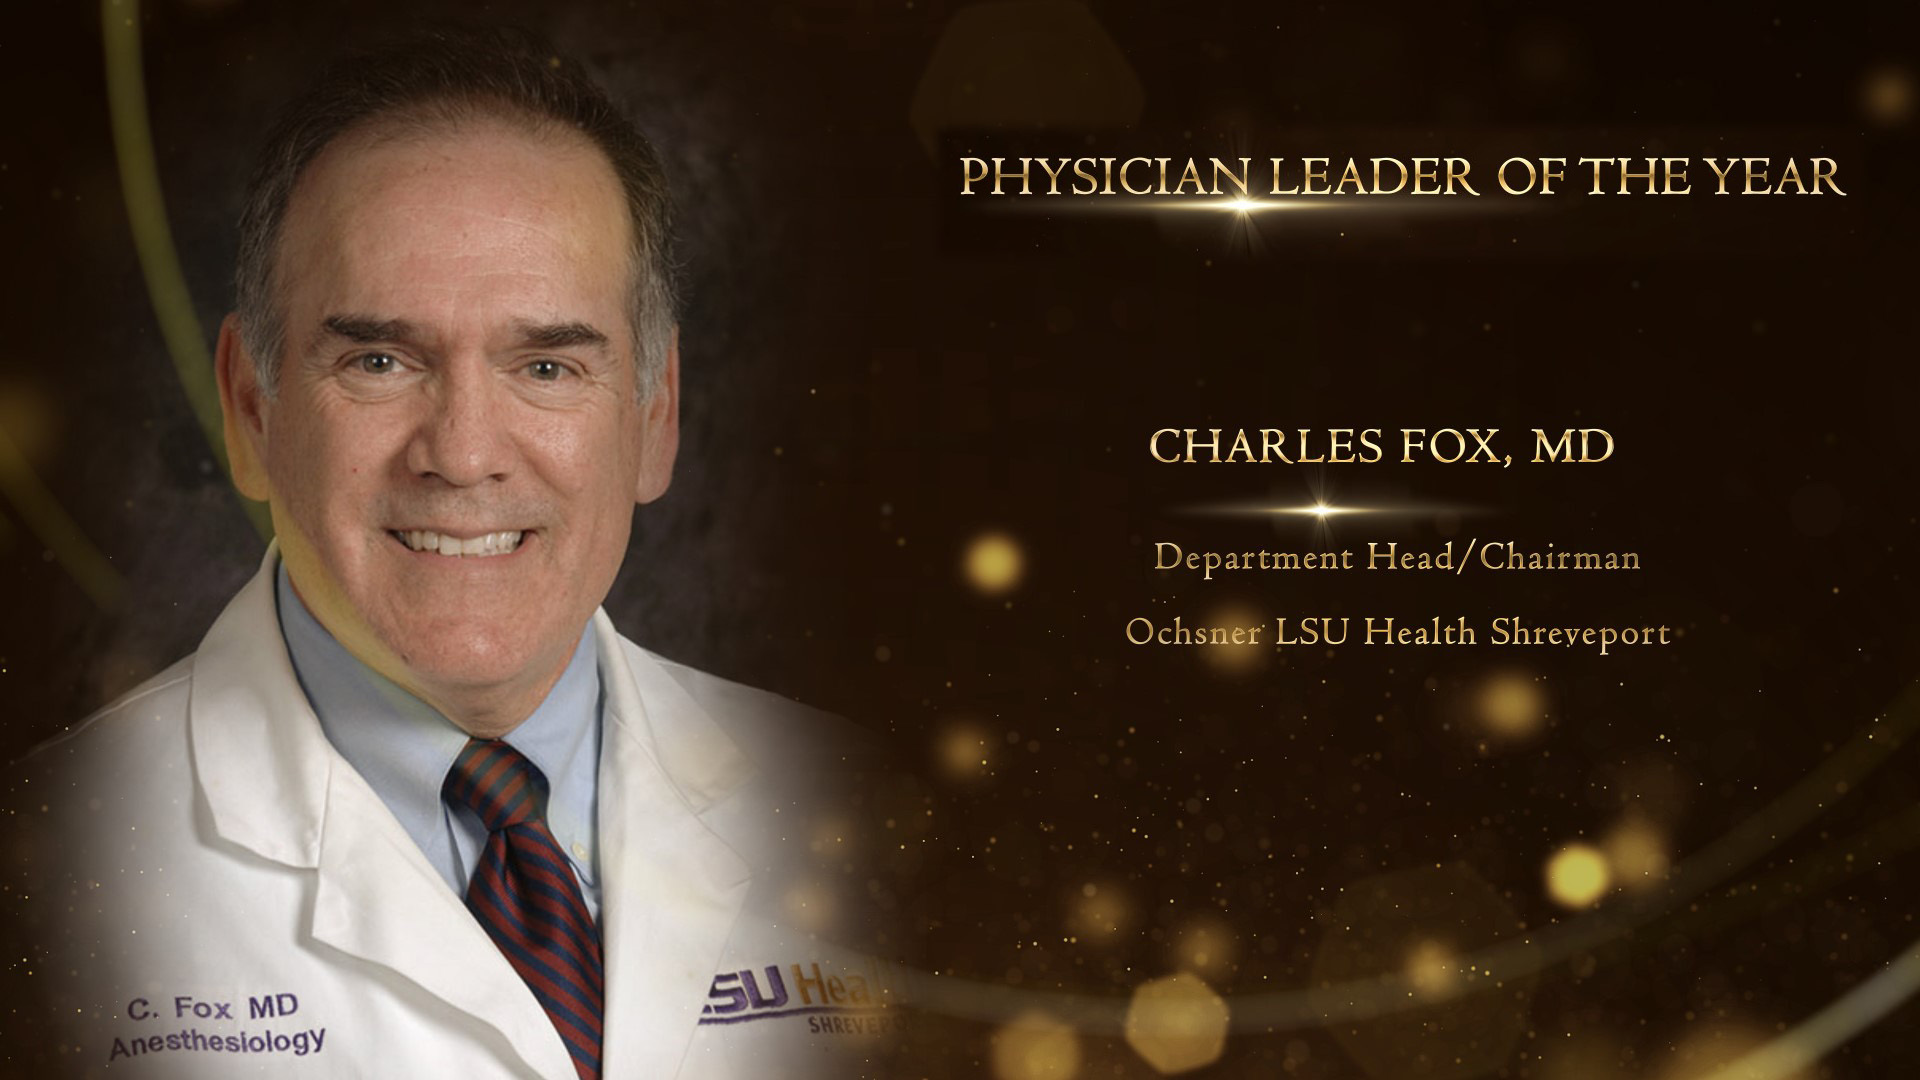 Physician Leader of the Year NOM 1 2020 06 19 16 29 31